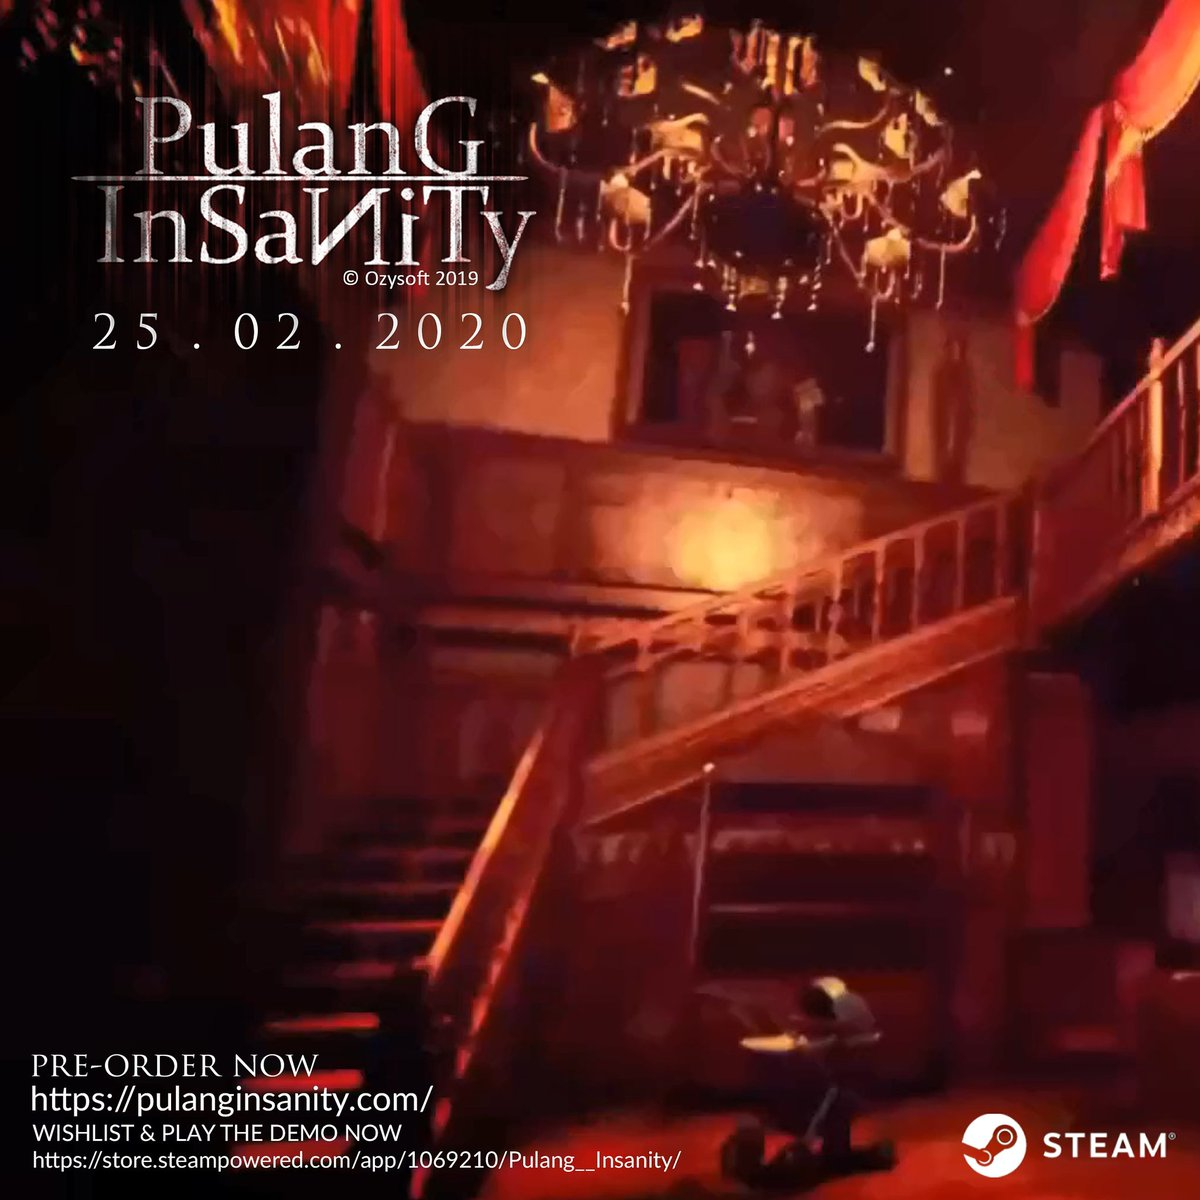 WISHLIST & PLAY THE DEMO NOW https://store.steampowered.com/app/1069210/Pulang__Insanity/ …  Website : http://pulanginsanity.com/   #EnterInsanity #ComingSoon #Games #Steam #Indonesia #horror #SurvivalHorror #PsychologicalHorror #pulanginsanity #NewDemoUpdatepic.twitter.com/fiouJKry6O